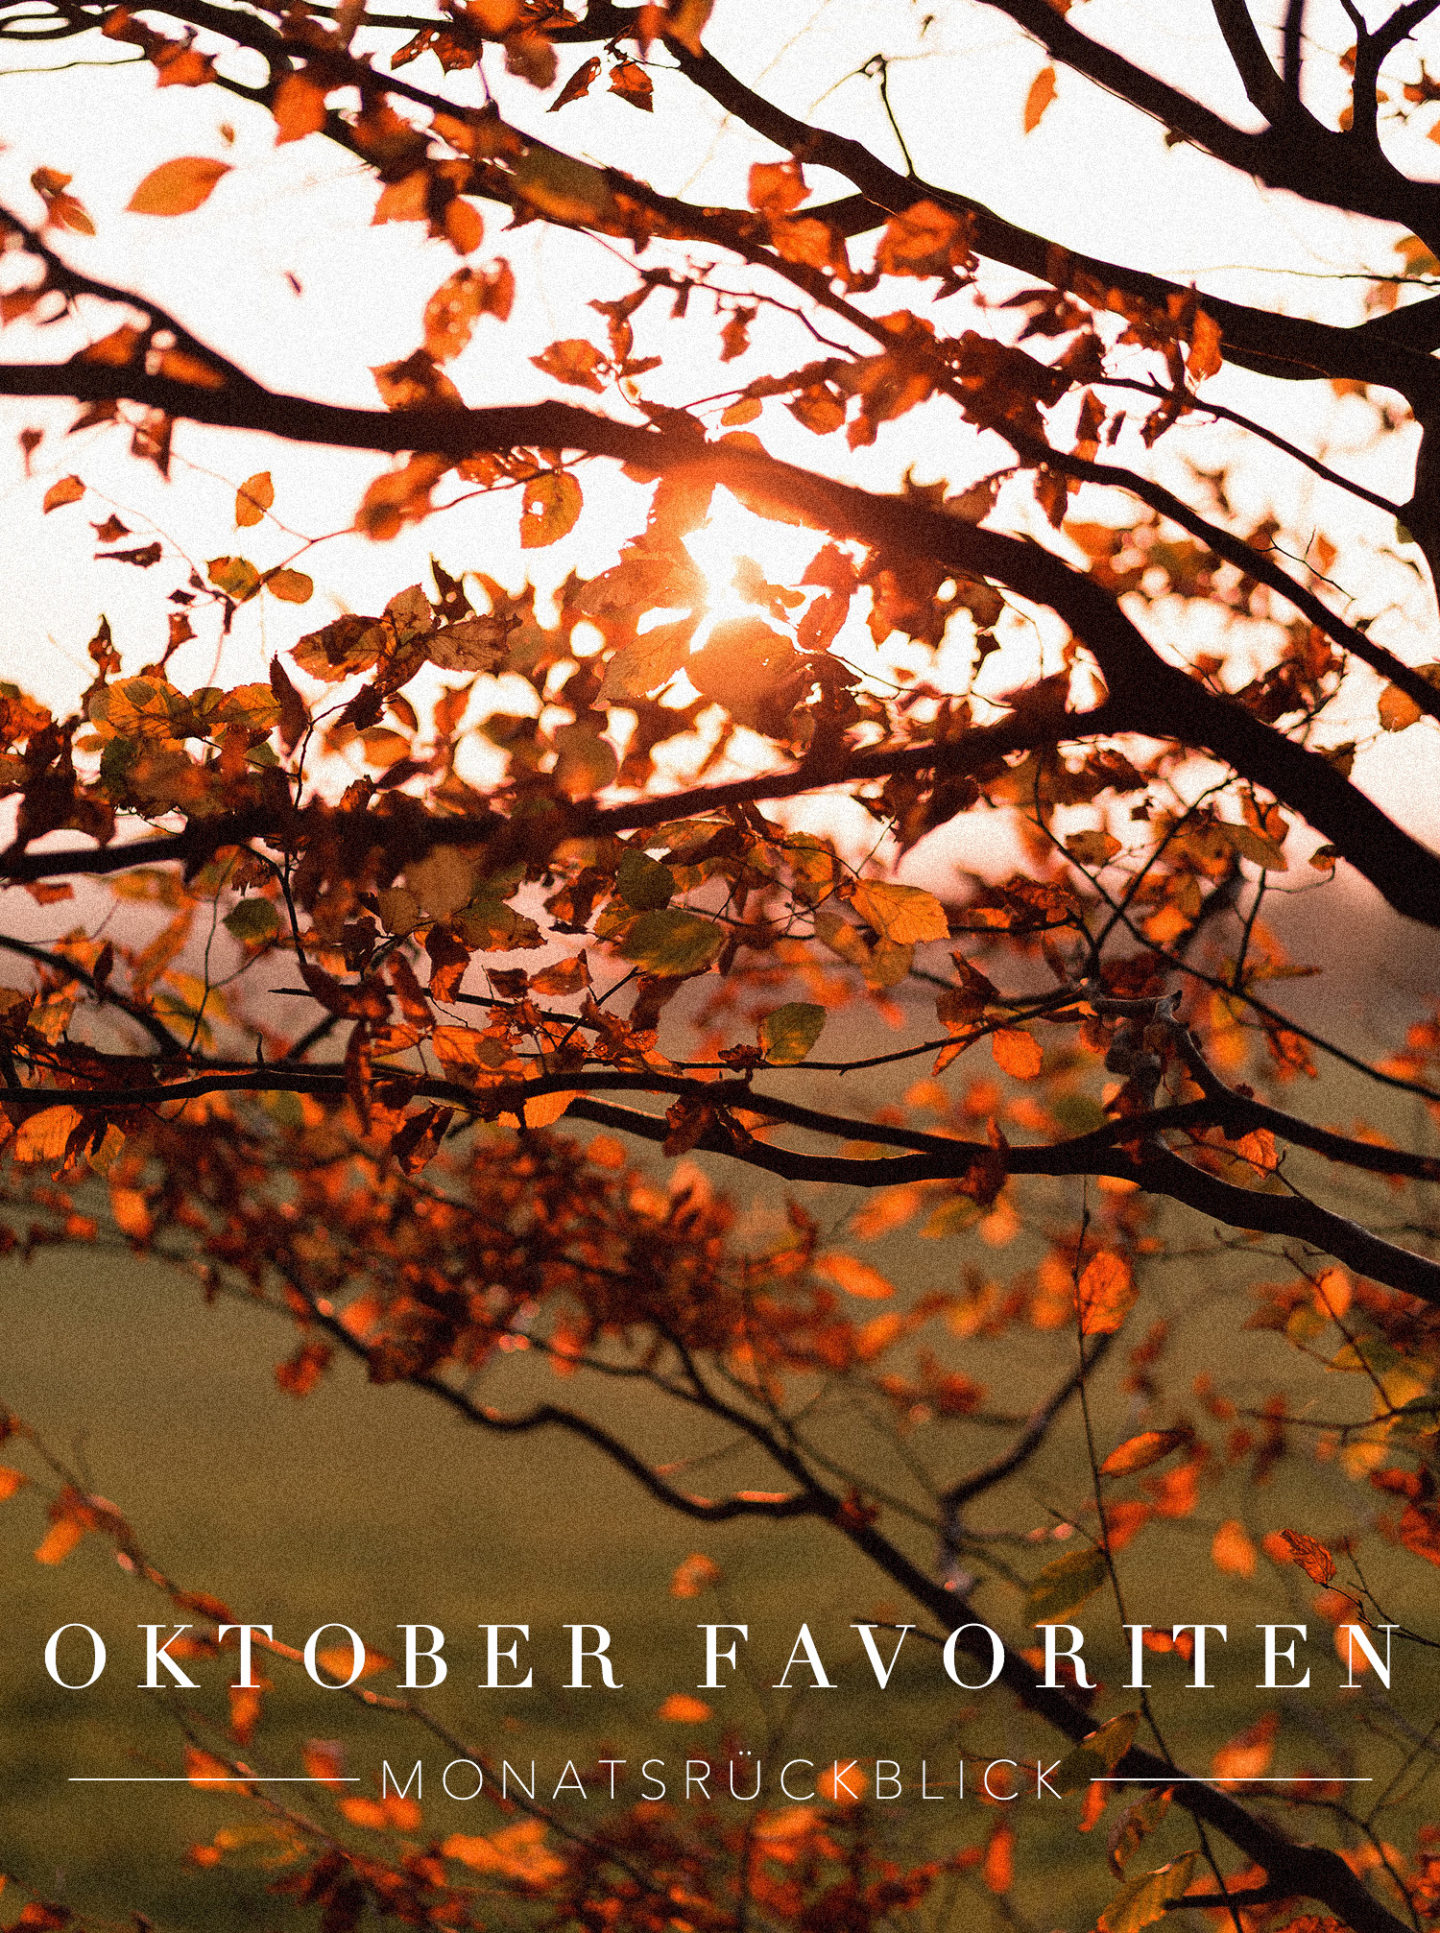 Oktober Favoriten & Monatsrückblick